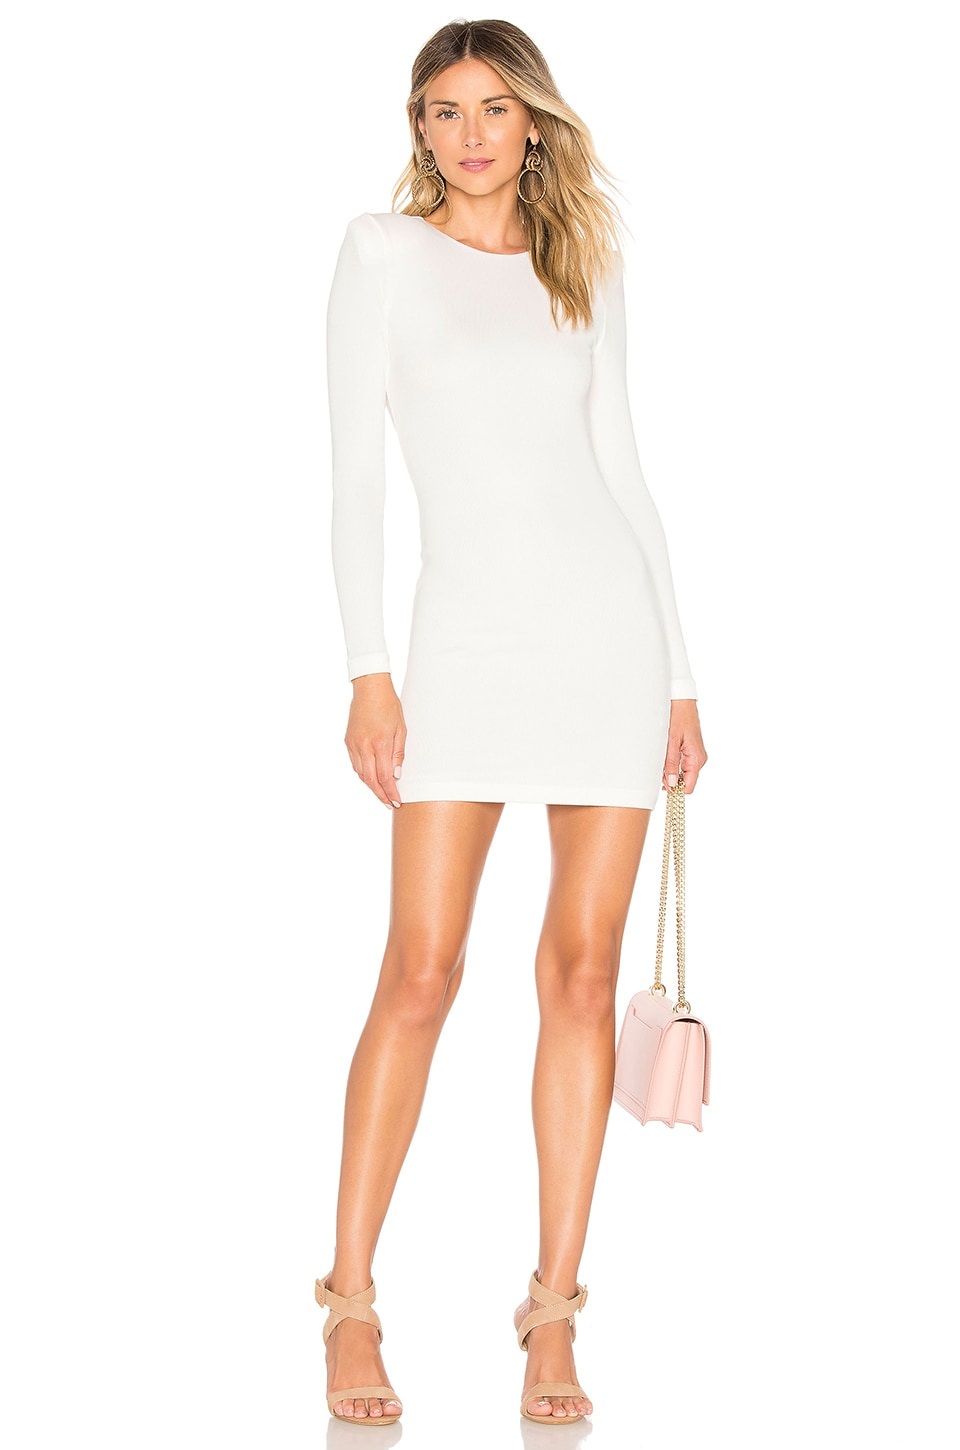 Chrissy Teigen x REVOLVE Sawyer Mini Dress in White